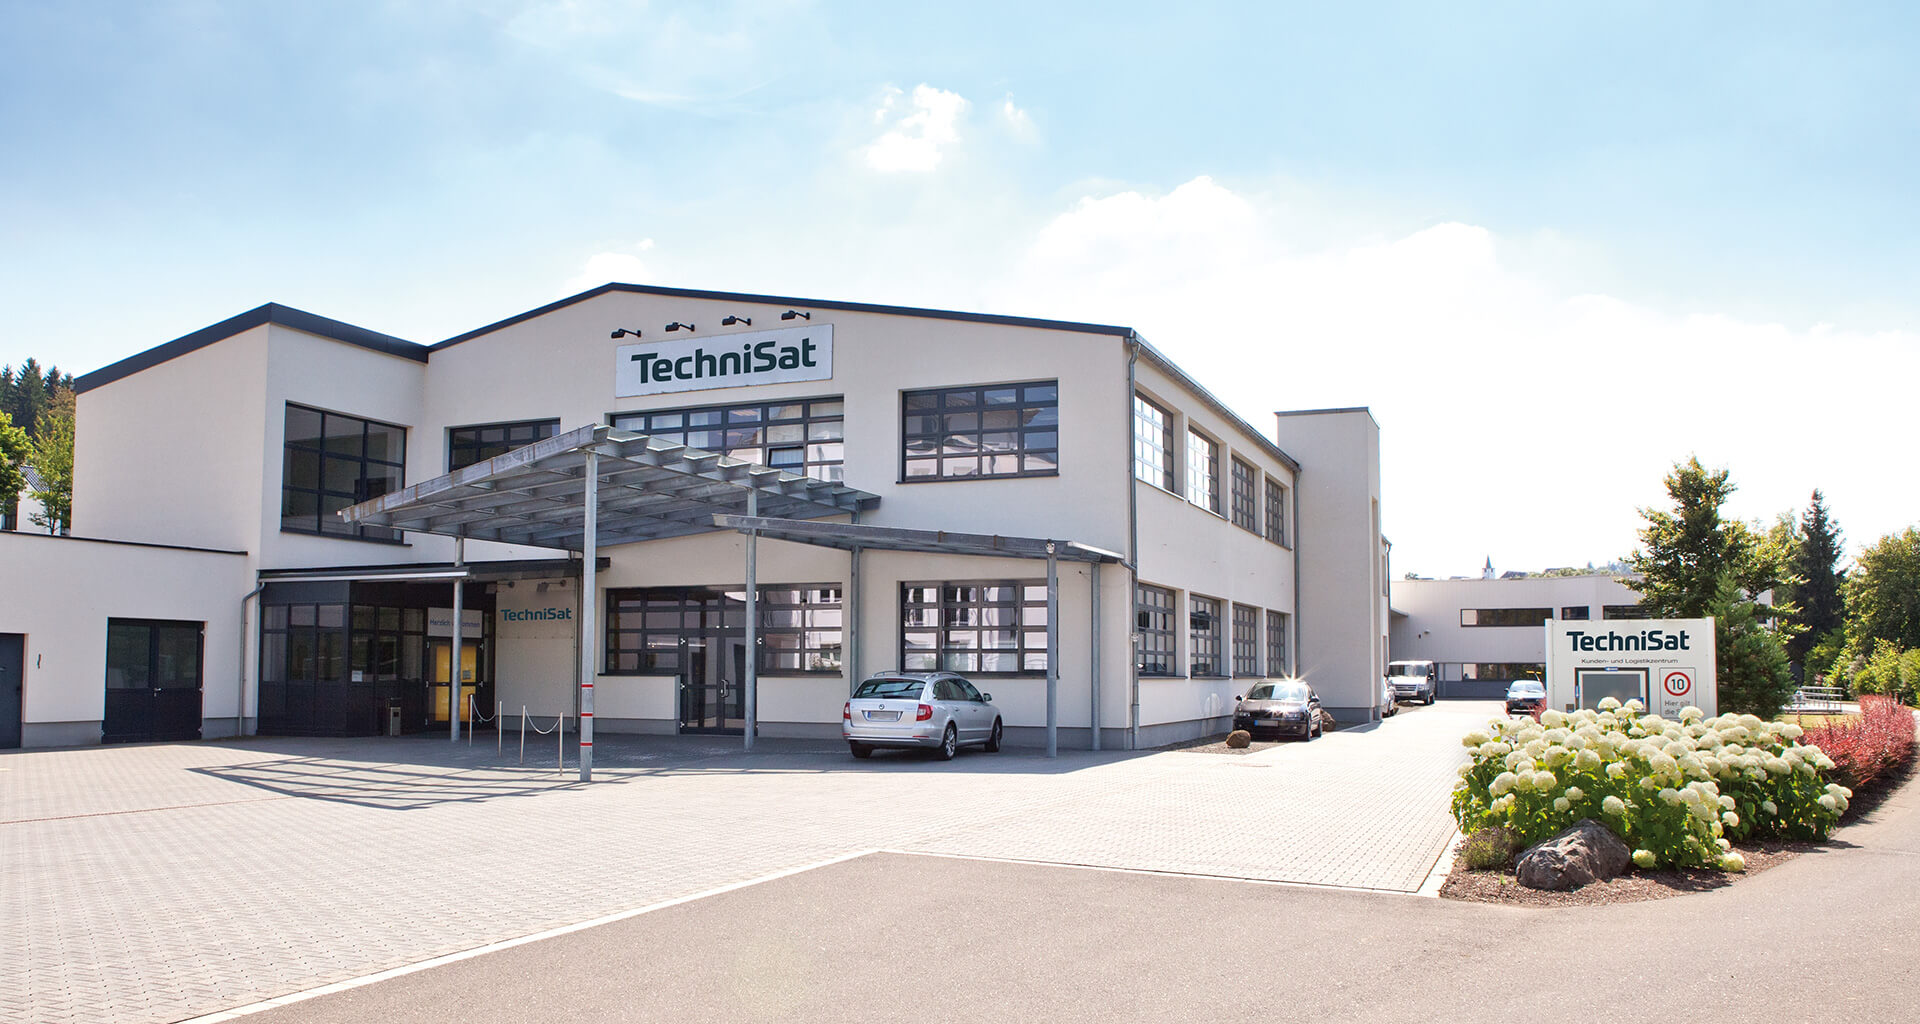 TechniSat Digital GmbH